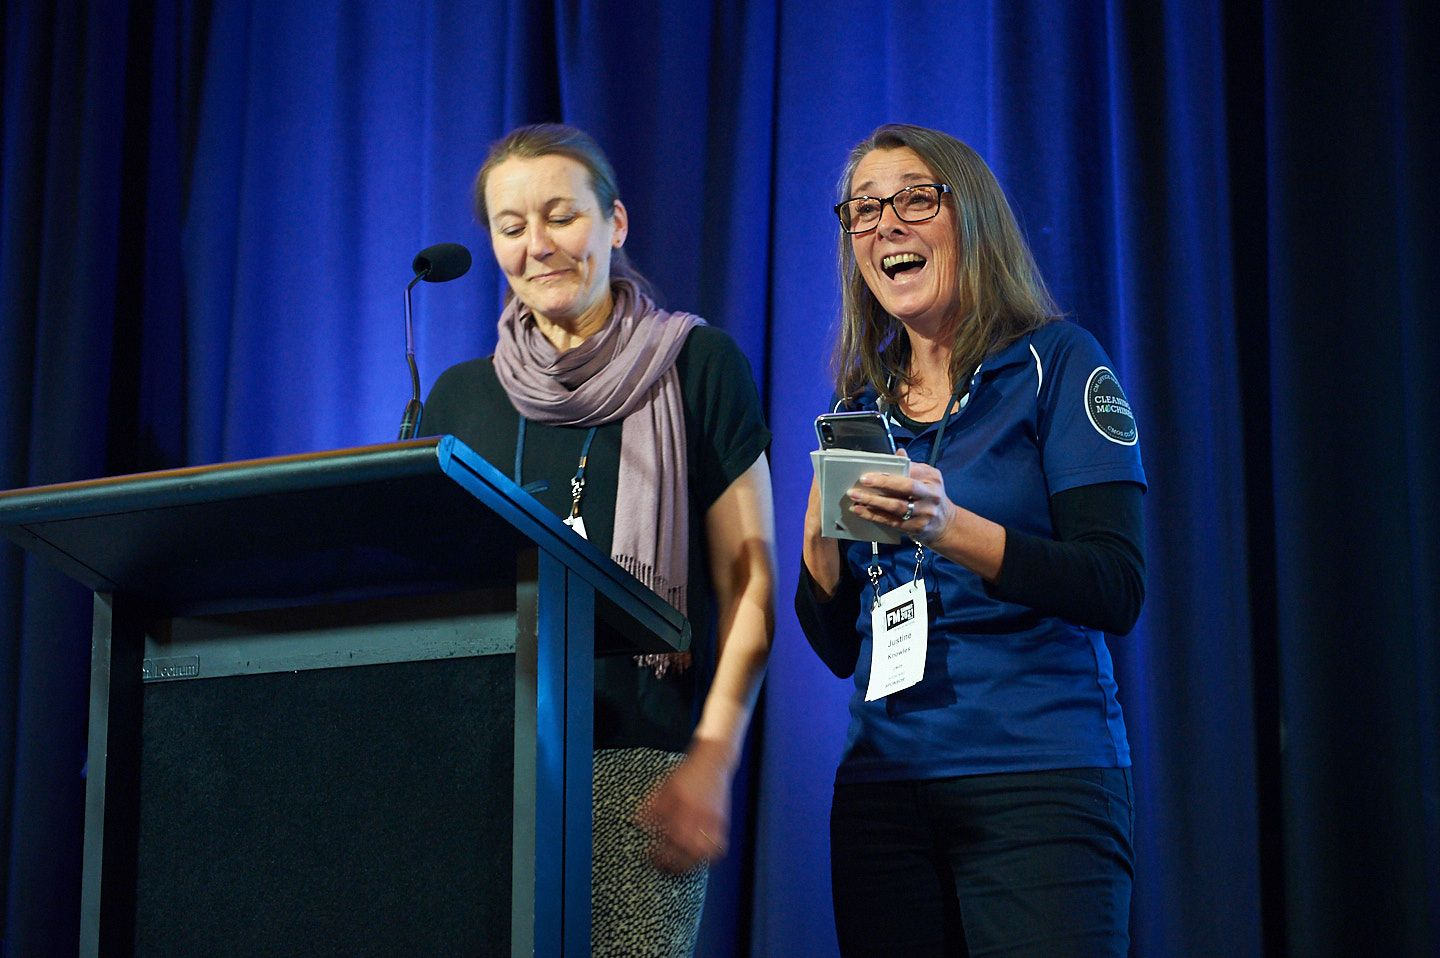 Marjolein and Justine presenting the award